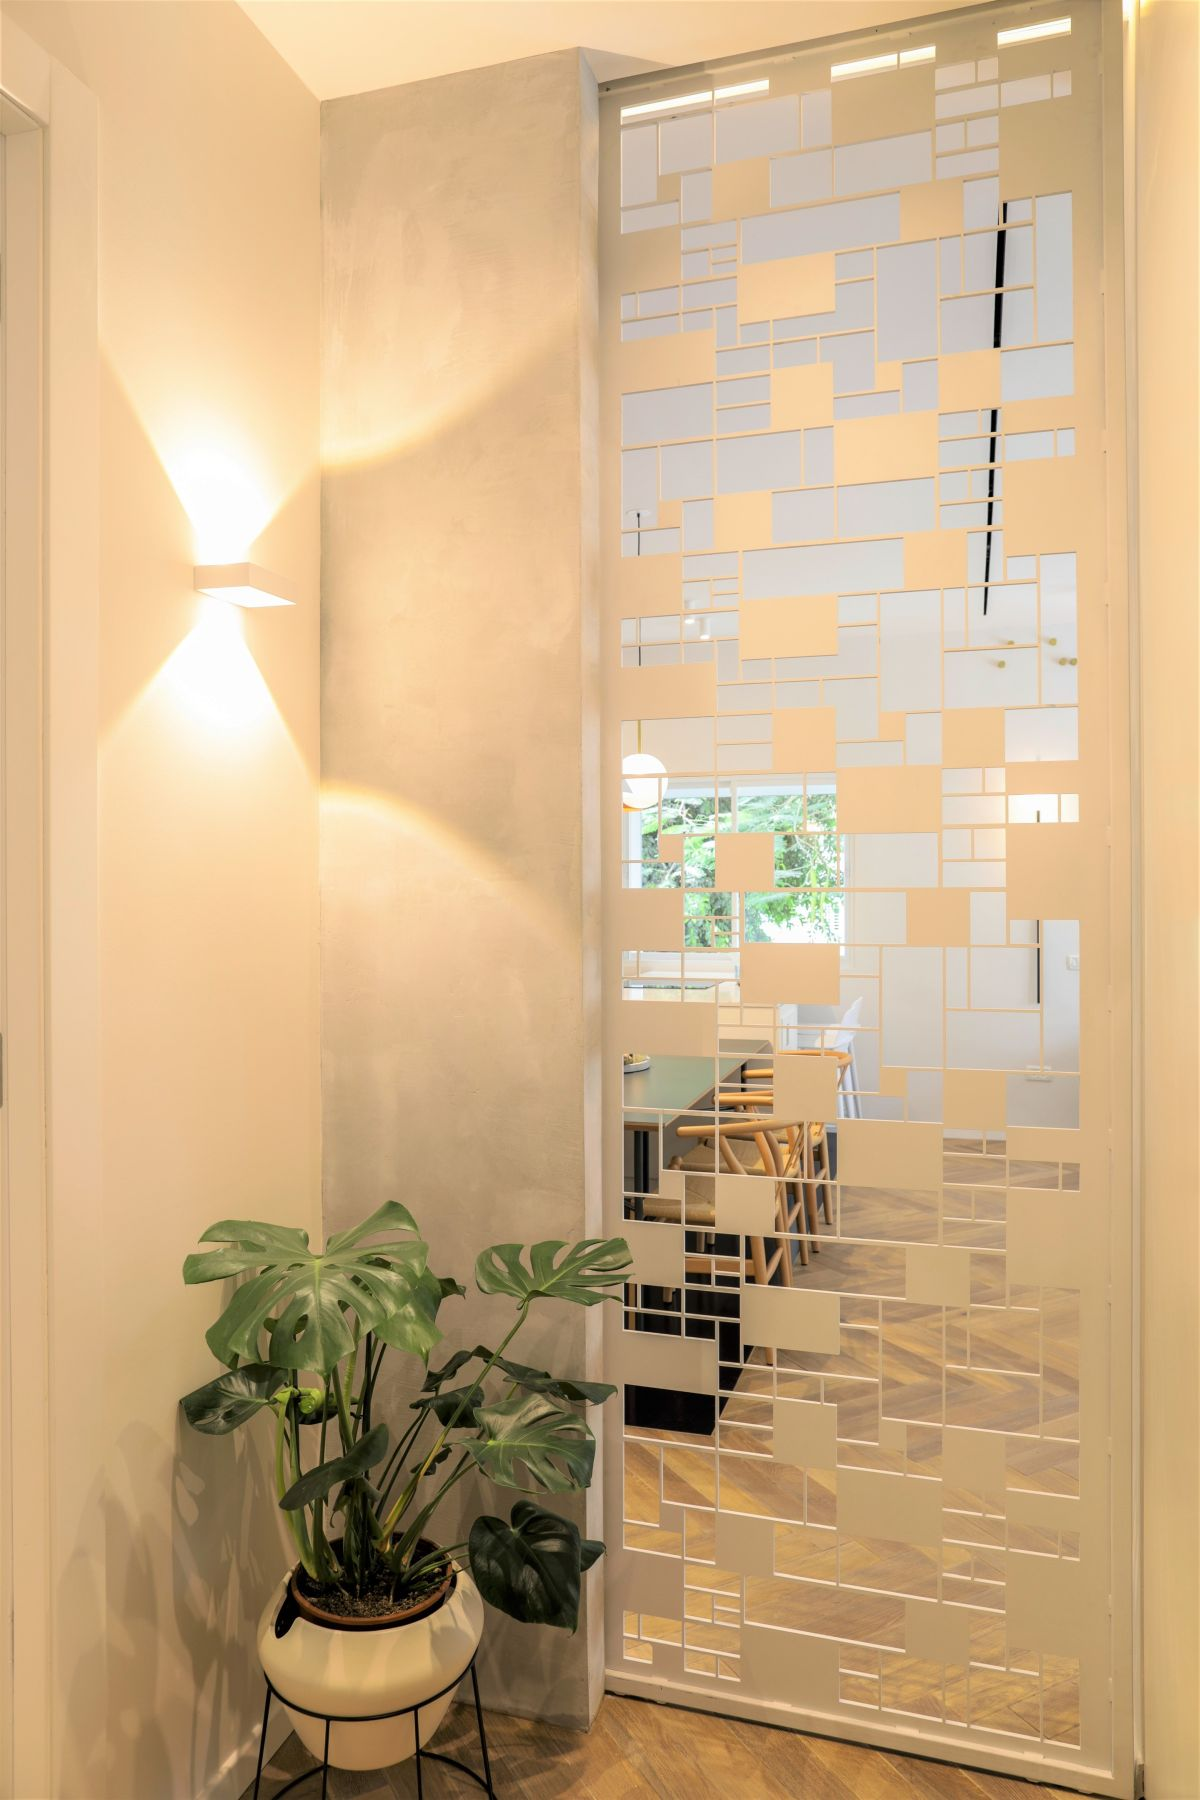 The screen provides privacy but still lets in some natural light.